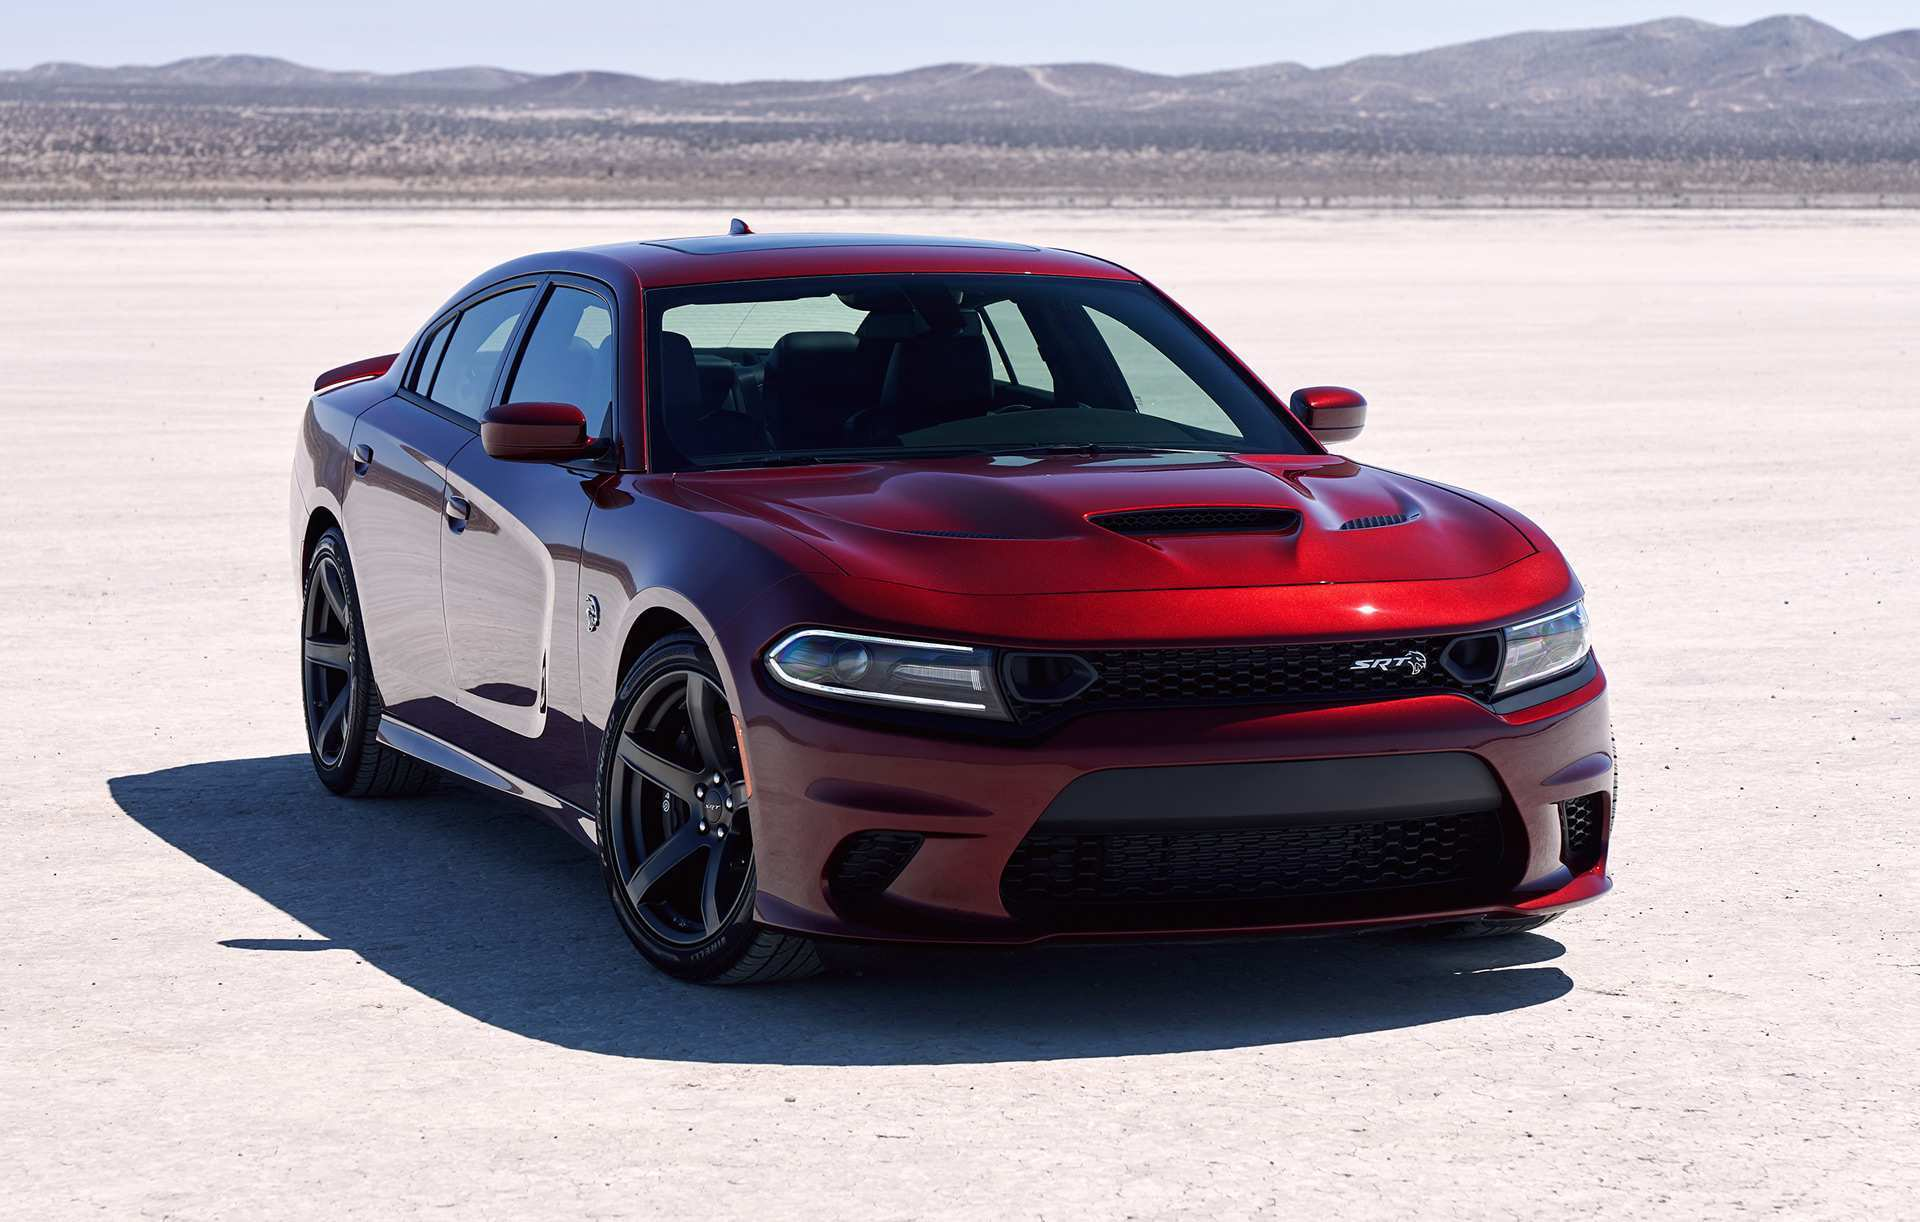 80 A 2019 Dodge Charger Srt 8 Exterior